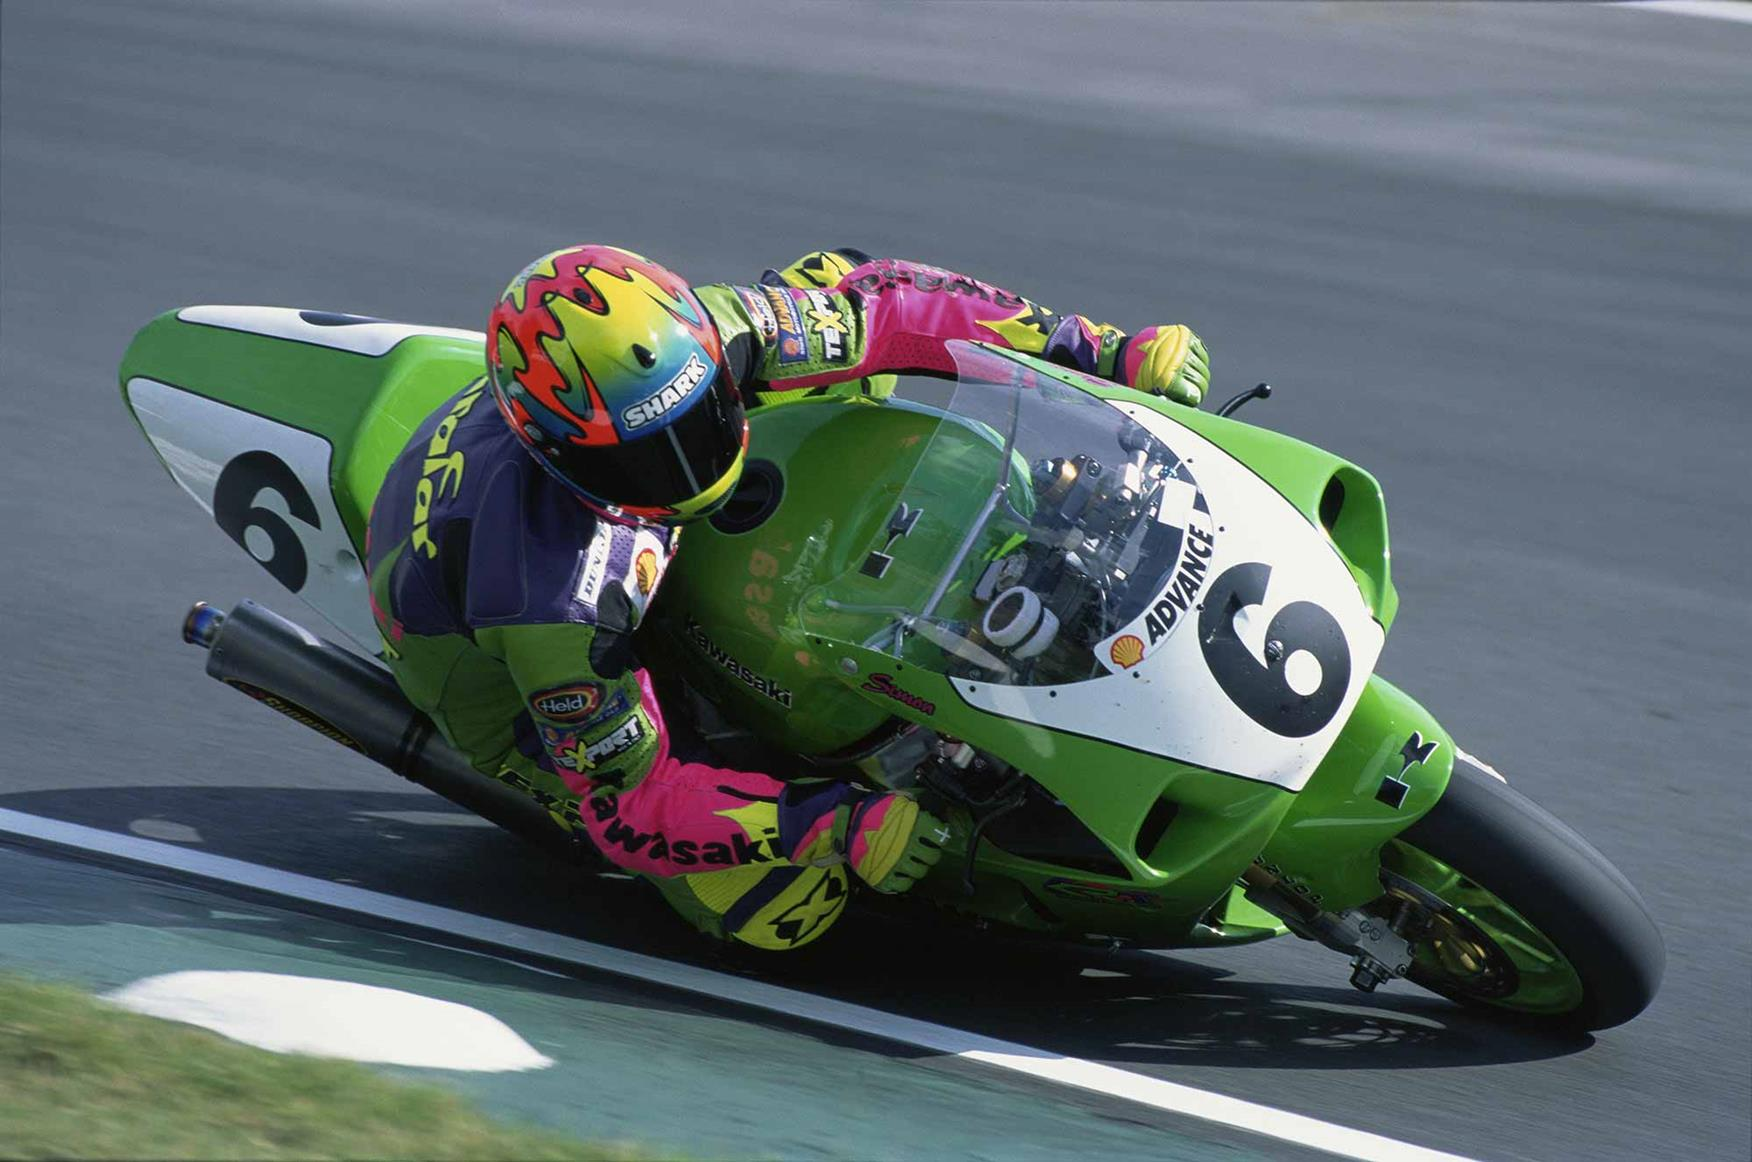 Simon Crafar at Brands Hatch World Superbikes in 1997